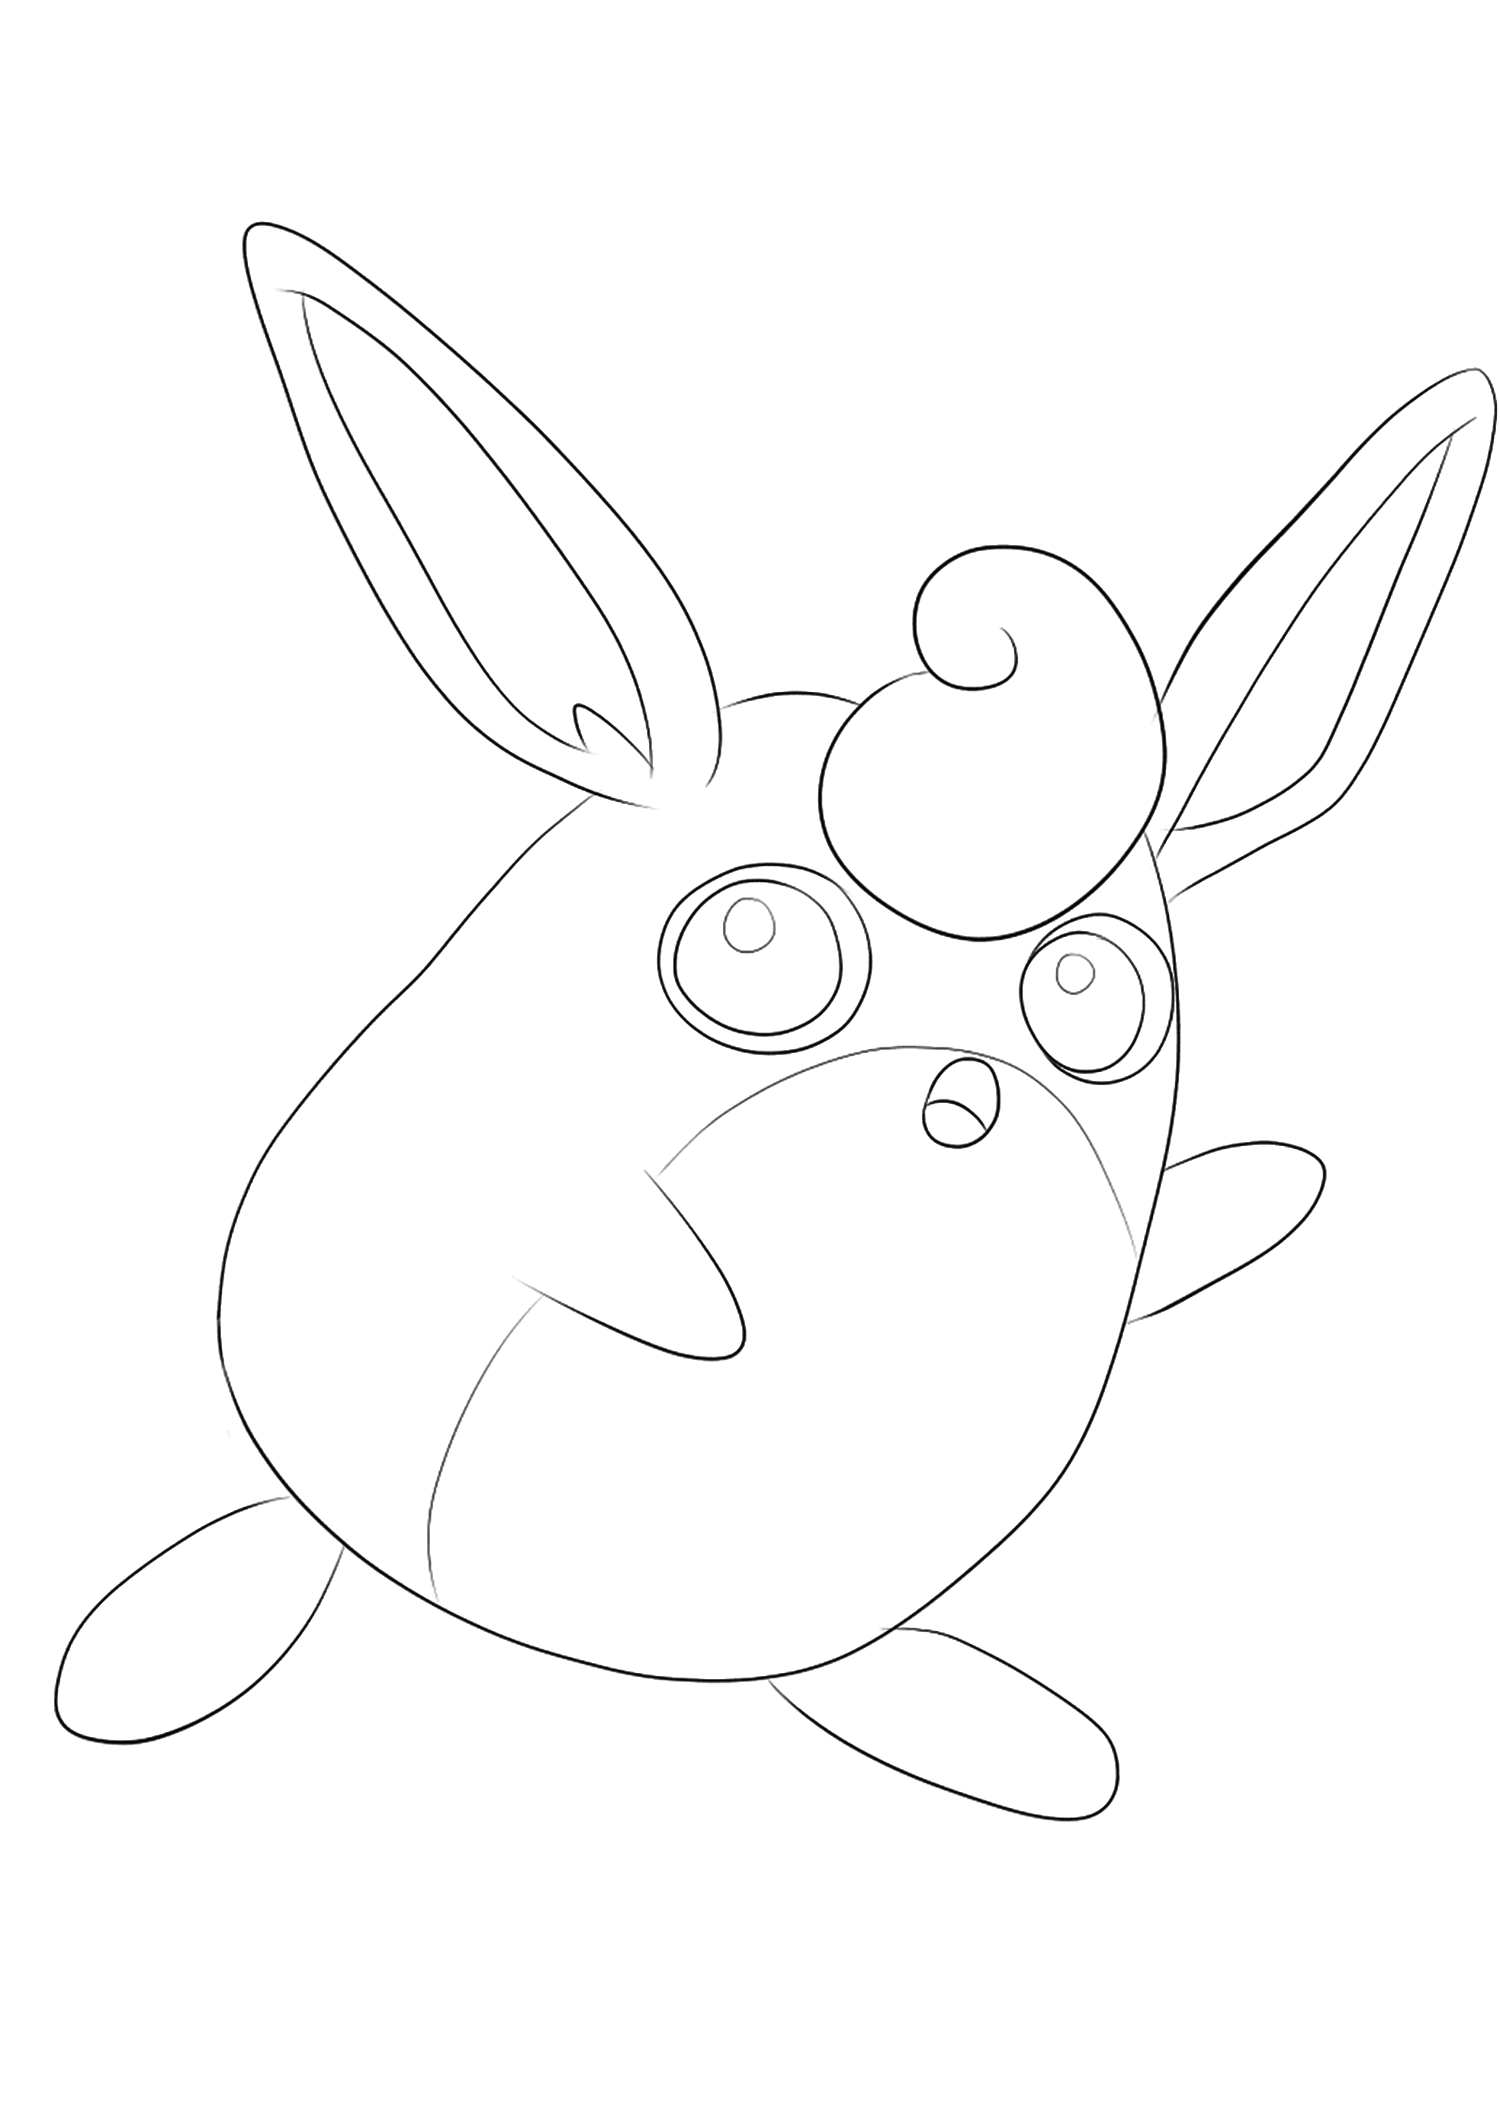 Wigglytuff (No.40)Wigglytuff Coloring page, Generation I Pokemon of type Normal and FairyOriginal image credit: Pokemon linearts by Lilly Gerbil'font-size:smaller;color:gray'>Permission: All rights reserved © Pokemon company and Ken Sugimori.